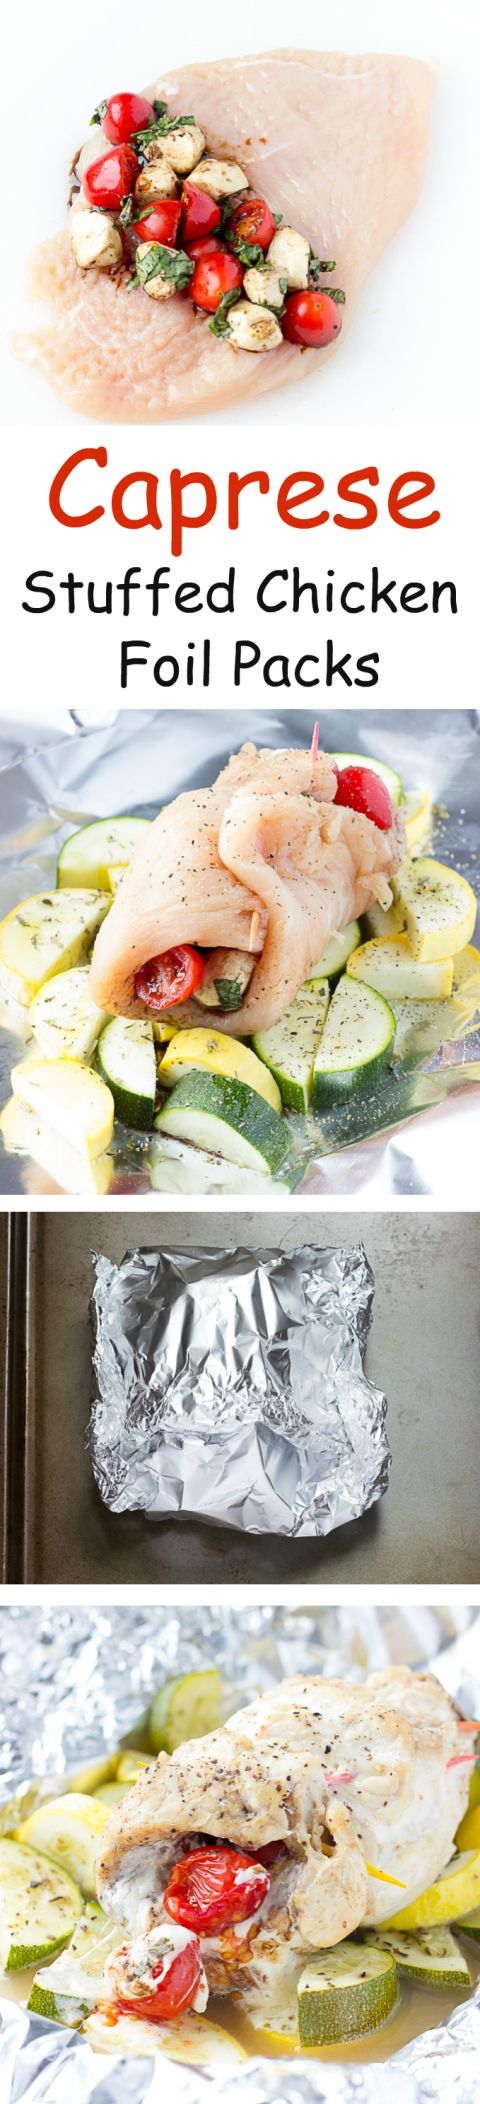 Caprese Stuffed Chicken Foil Packs- Which turned into GREEK stuffed chicken foil packs for me and Adam! Preheat the oven to 400 degrees Fahrenheit: For the veggies: -Coconut oil -Garlic powder -Italian seasoning -Salt -Pepper *Mix together/shake in a bag.